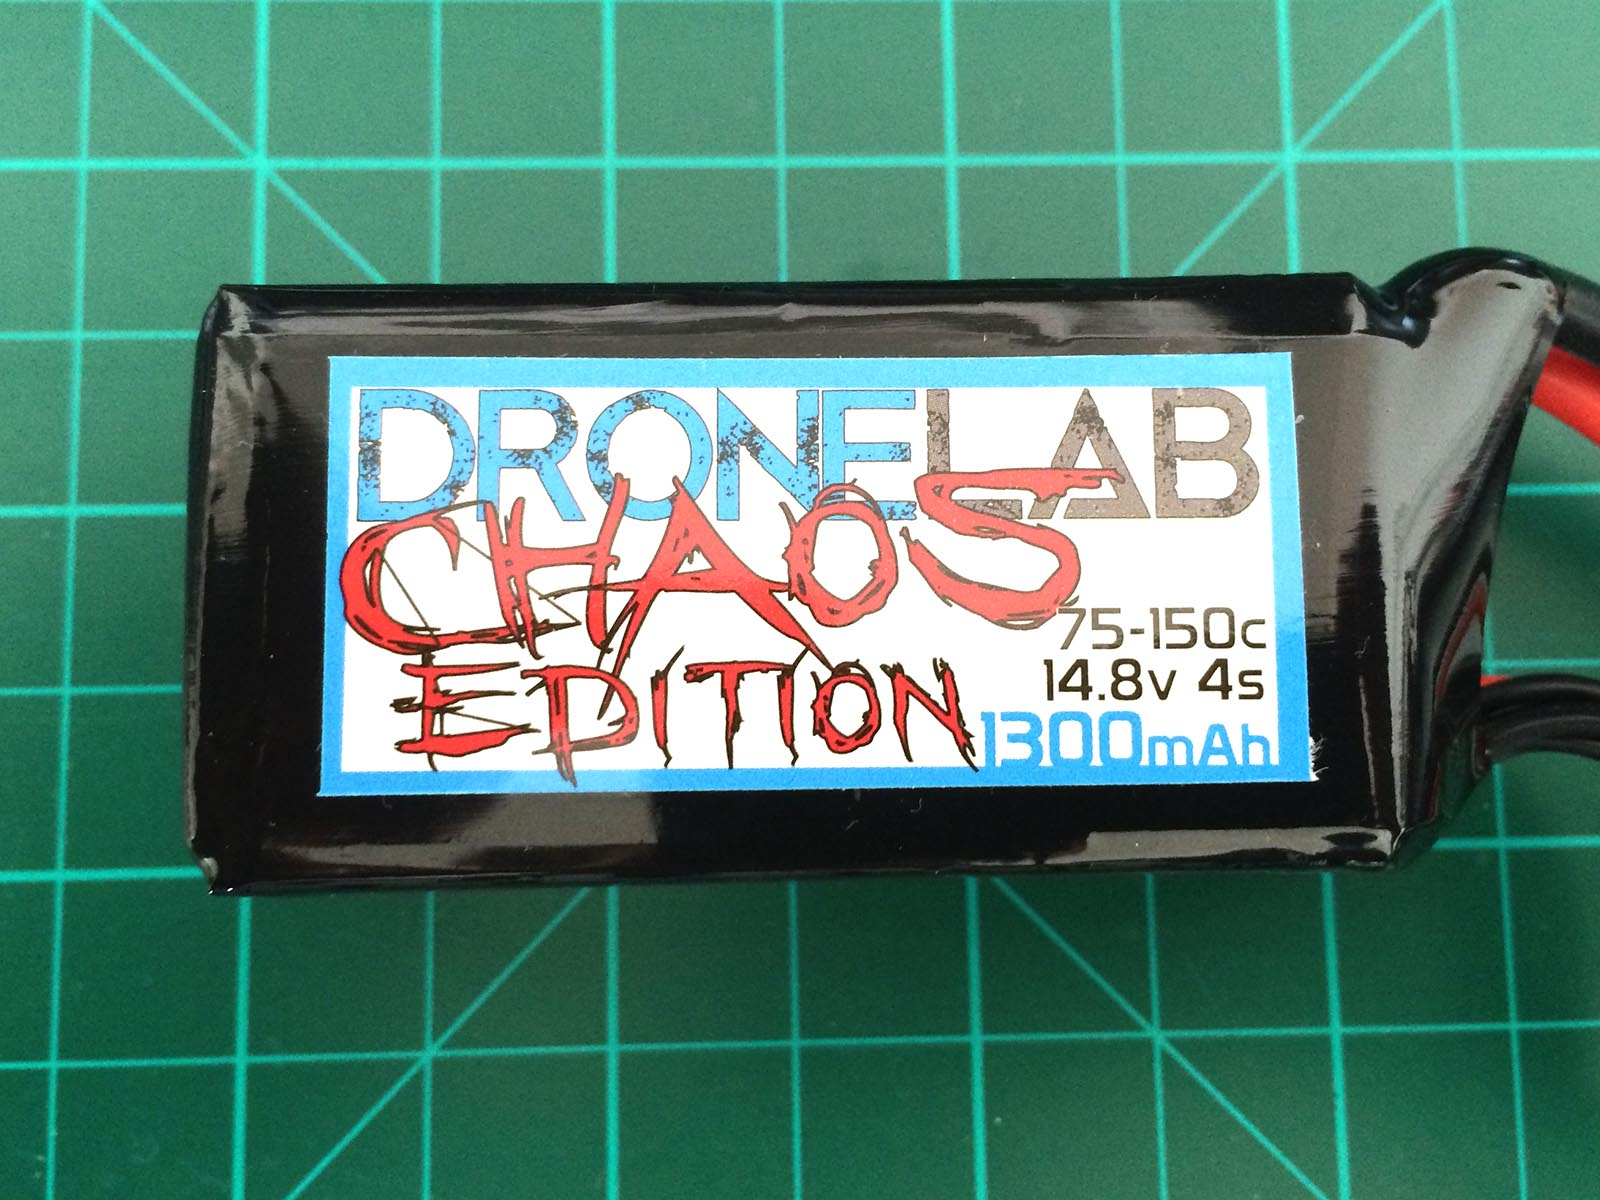 DroneLab CHAOS Edition 4S 1300 mAh 75-150 C - Front